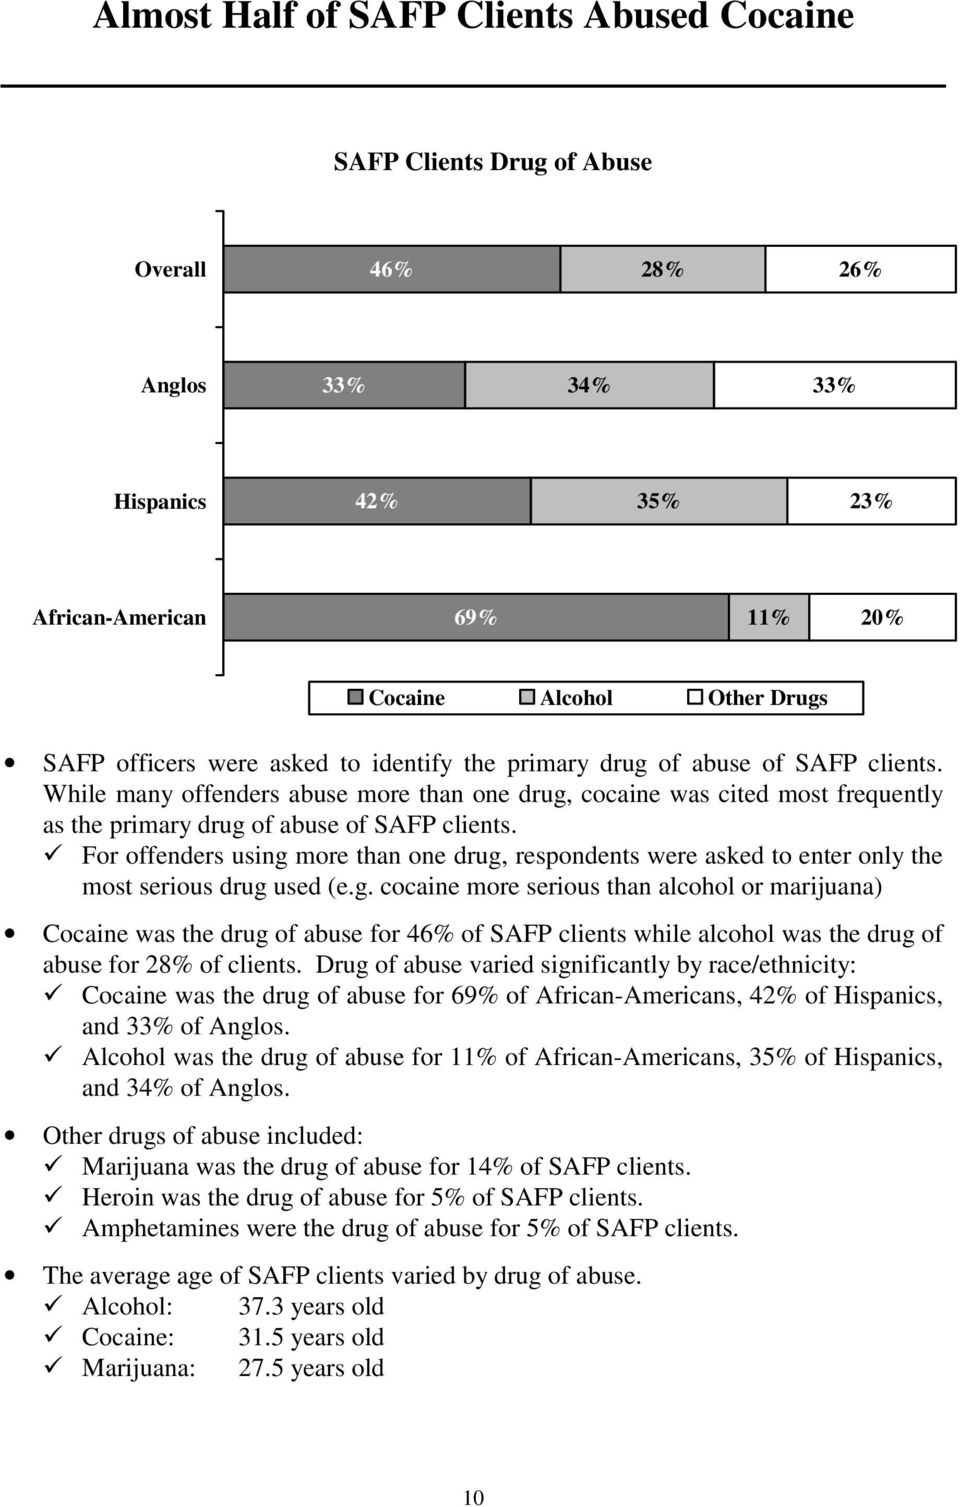 While many offenders abuse more than one drug, cocaine was cited most frequently as the primary drug of abuse of SAFP clients.